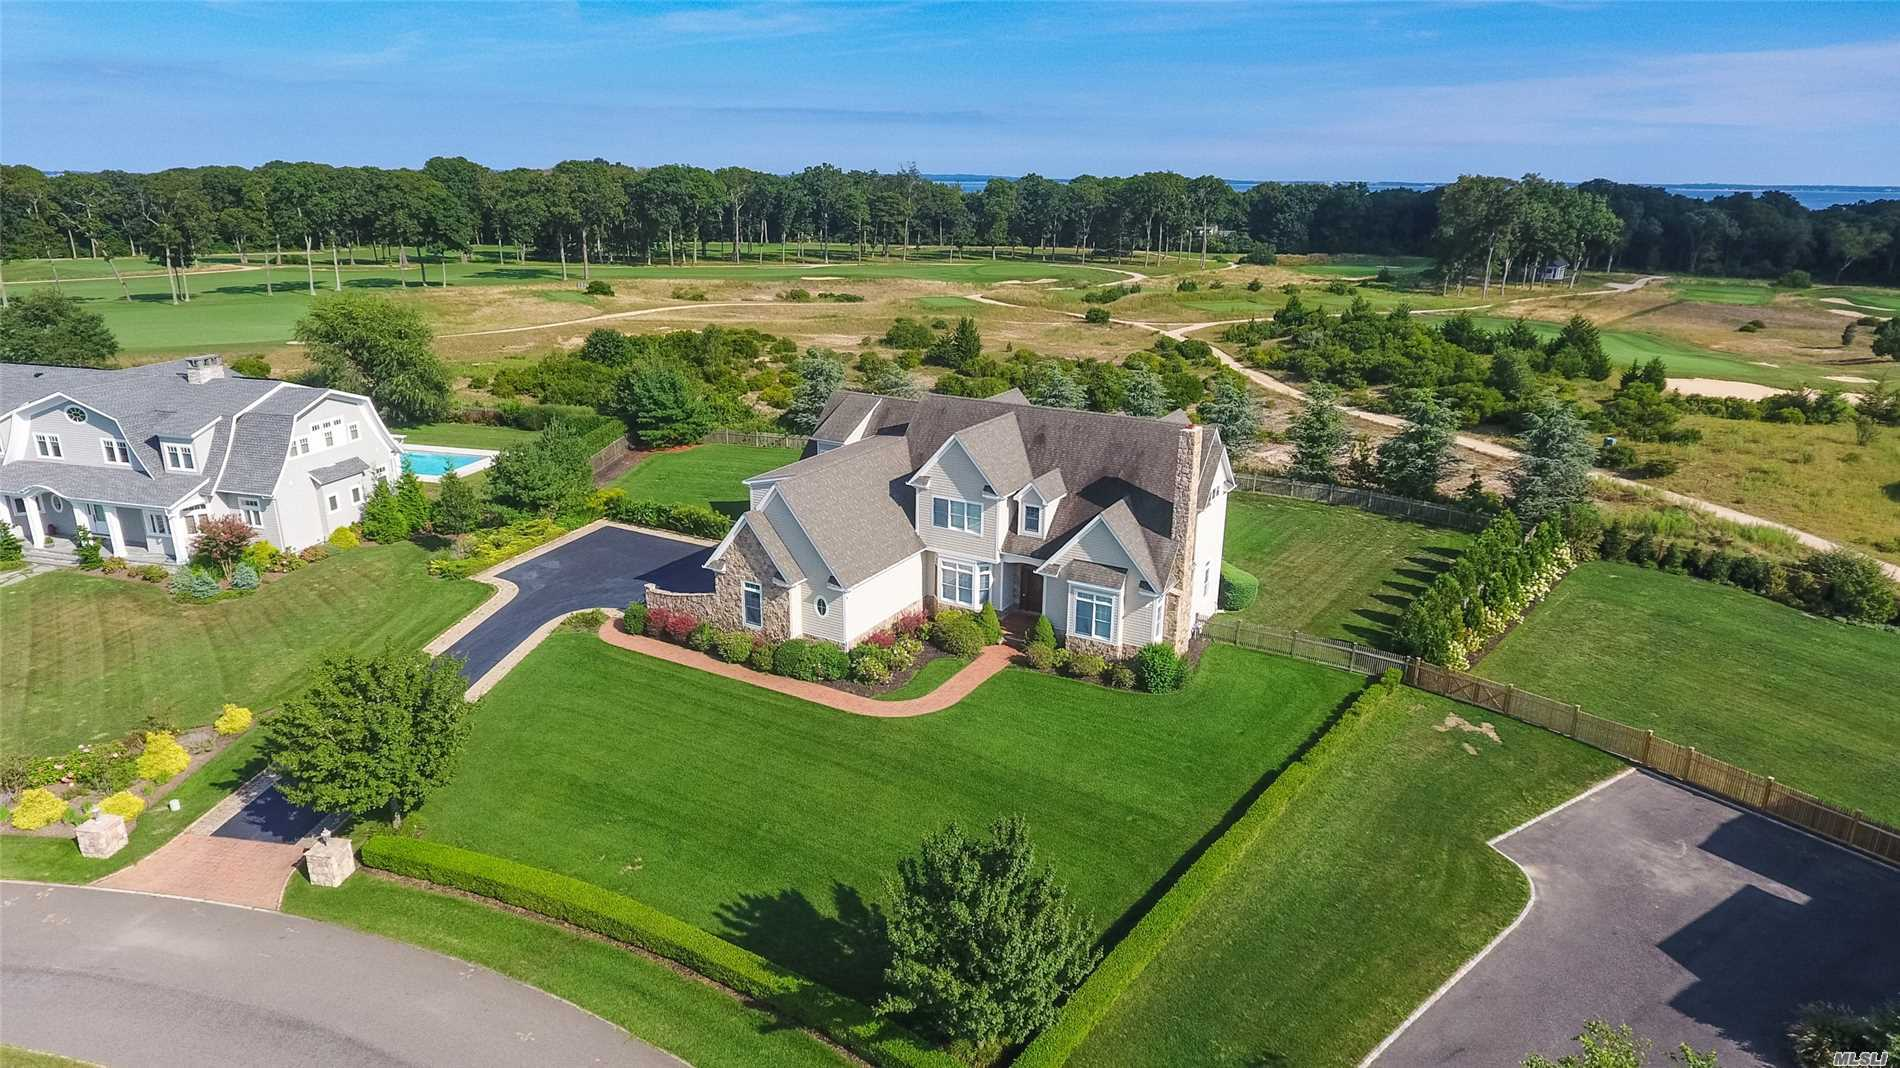 Stunning Architectural Delight Overlooking Golf Course In Private, Prime Golf Course Community. Move In This Custom Home With Incredible Fine Detail & Mill Work. Great Entertaining Flow, Gourmet Kitchen With Huge Walk In Pantry Opens To Great Room With Vaulted Ceiling, Beautiful Hardwood Floors Throughout, 5 Bedrooms, 3.5 Baths, Room For Guests, Gym, Heated Salt Water Pool, Outdoor Fireplace, Much More!